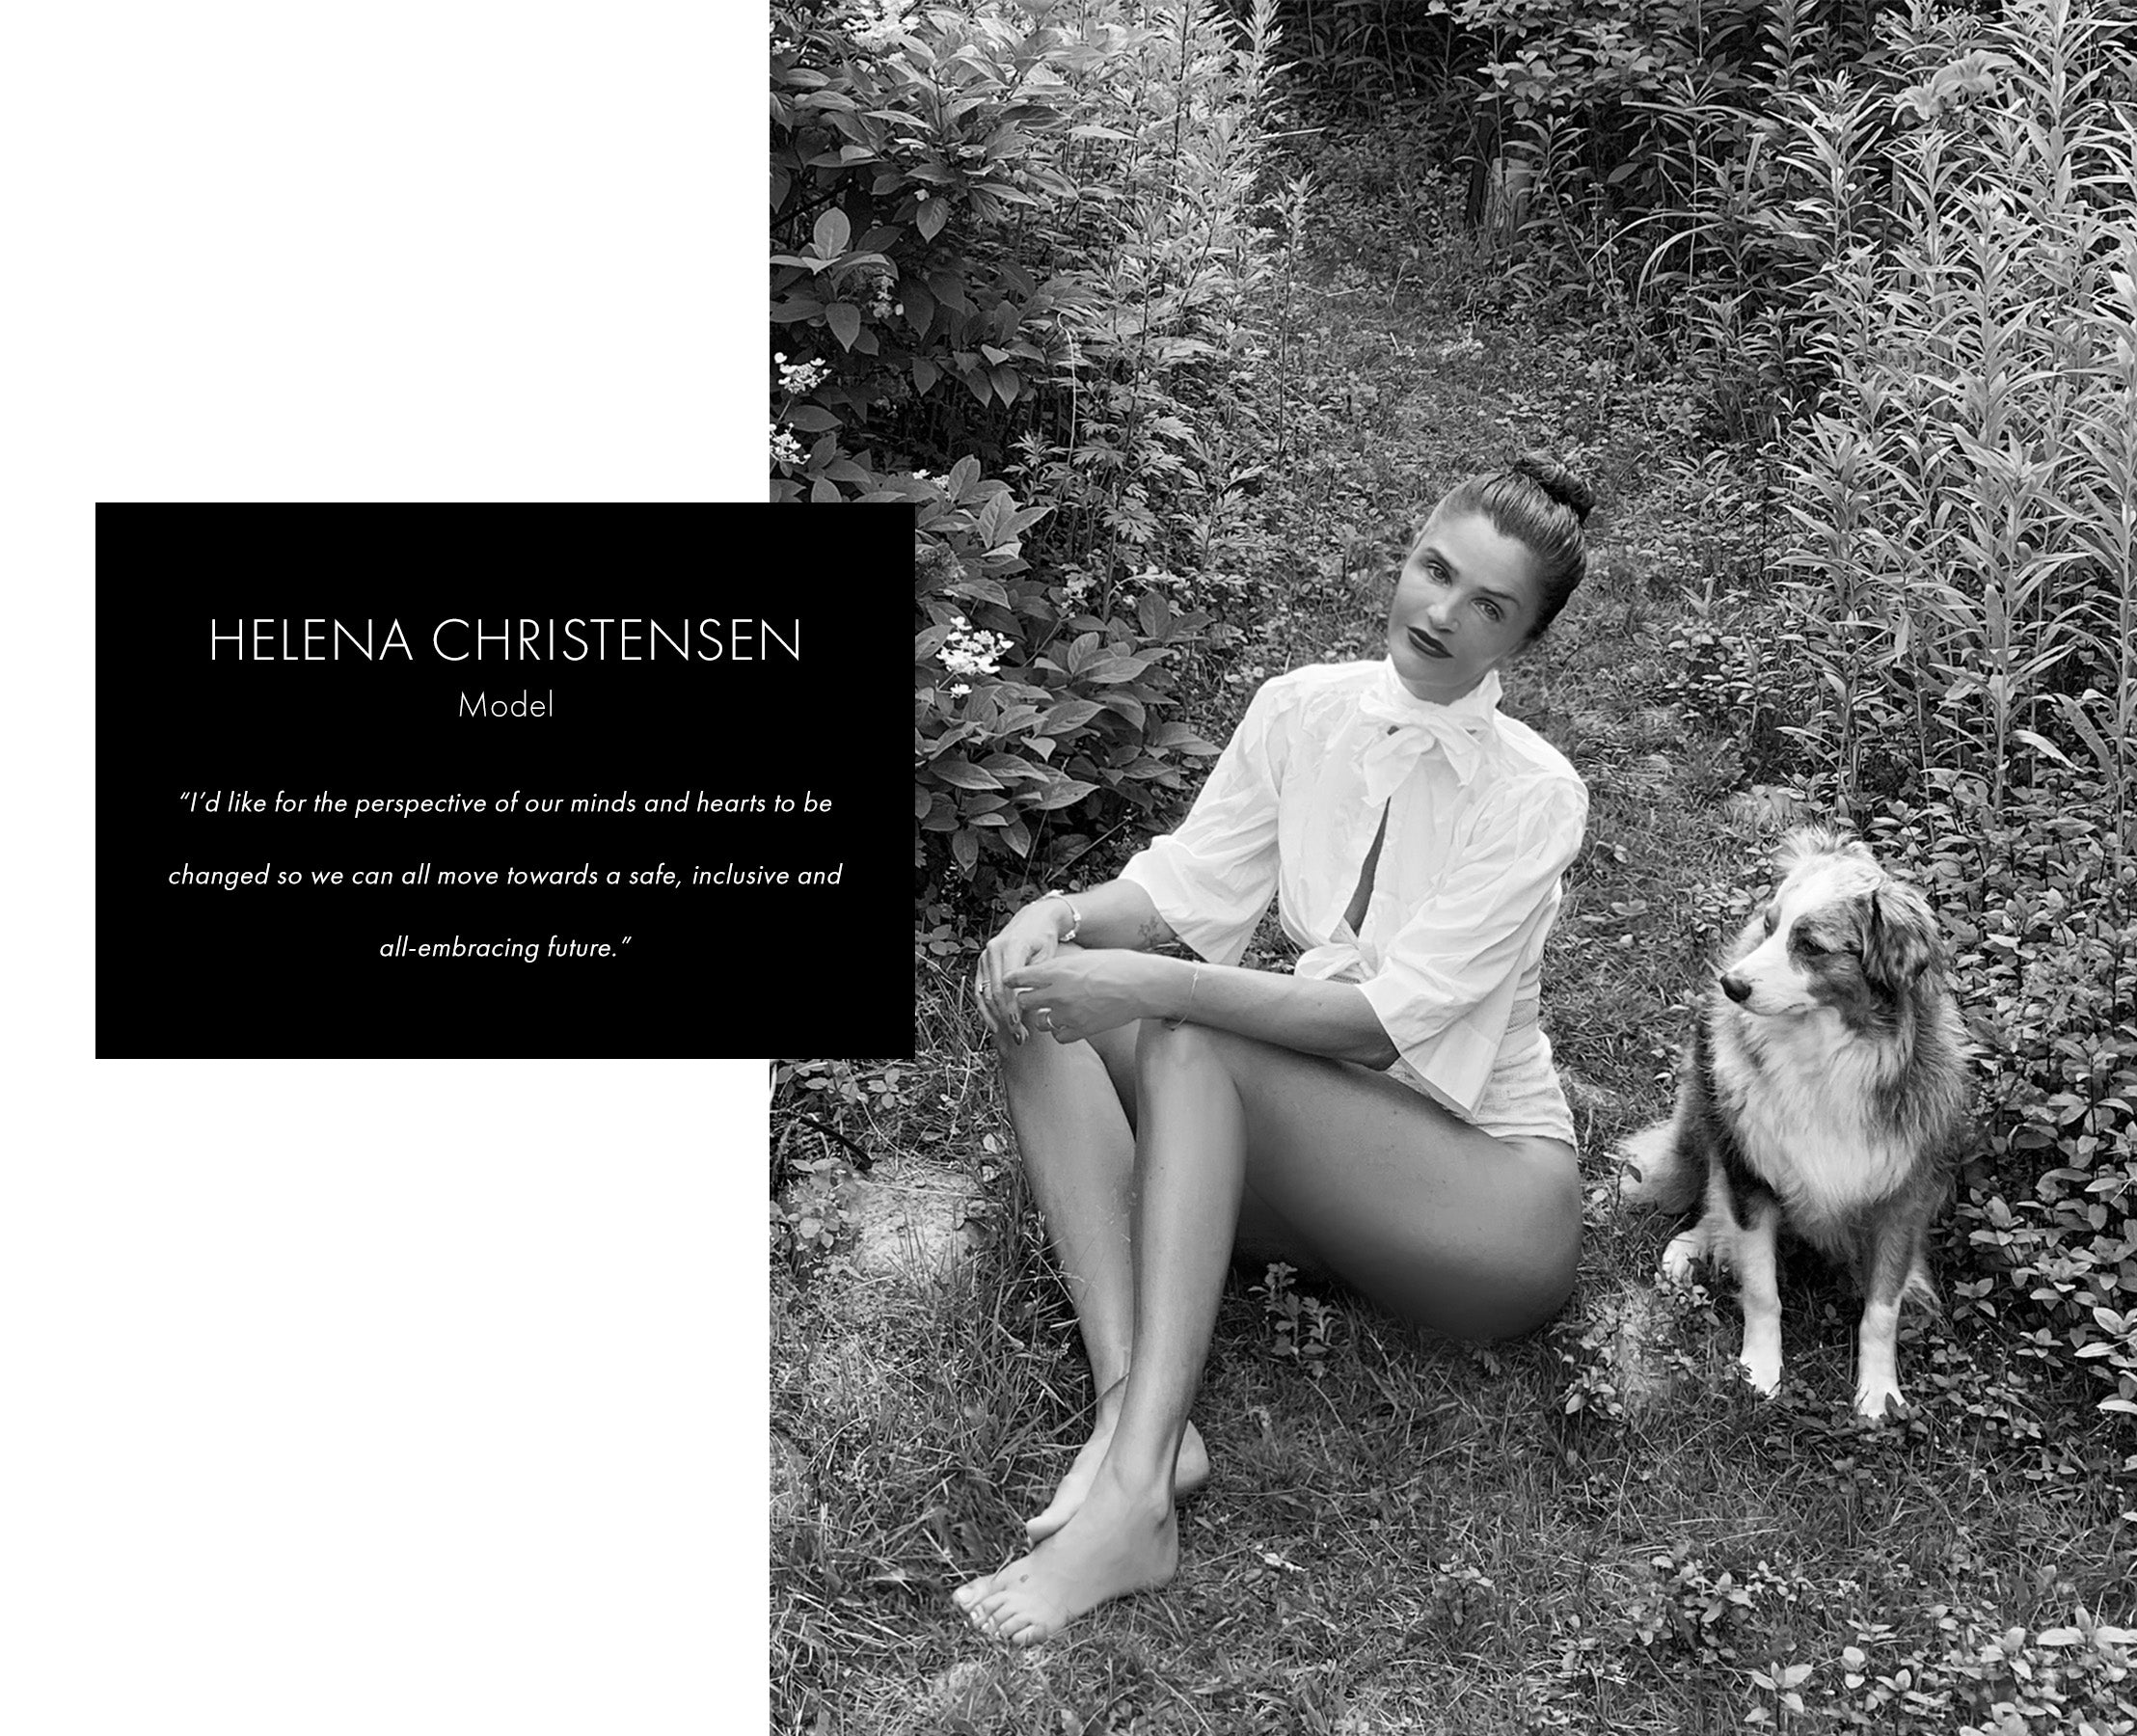 Helena Christensen in white blouse with dog